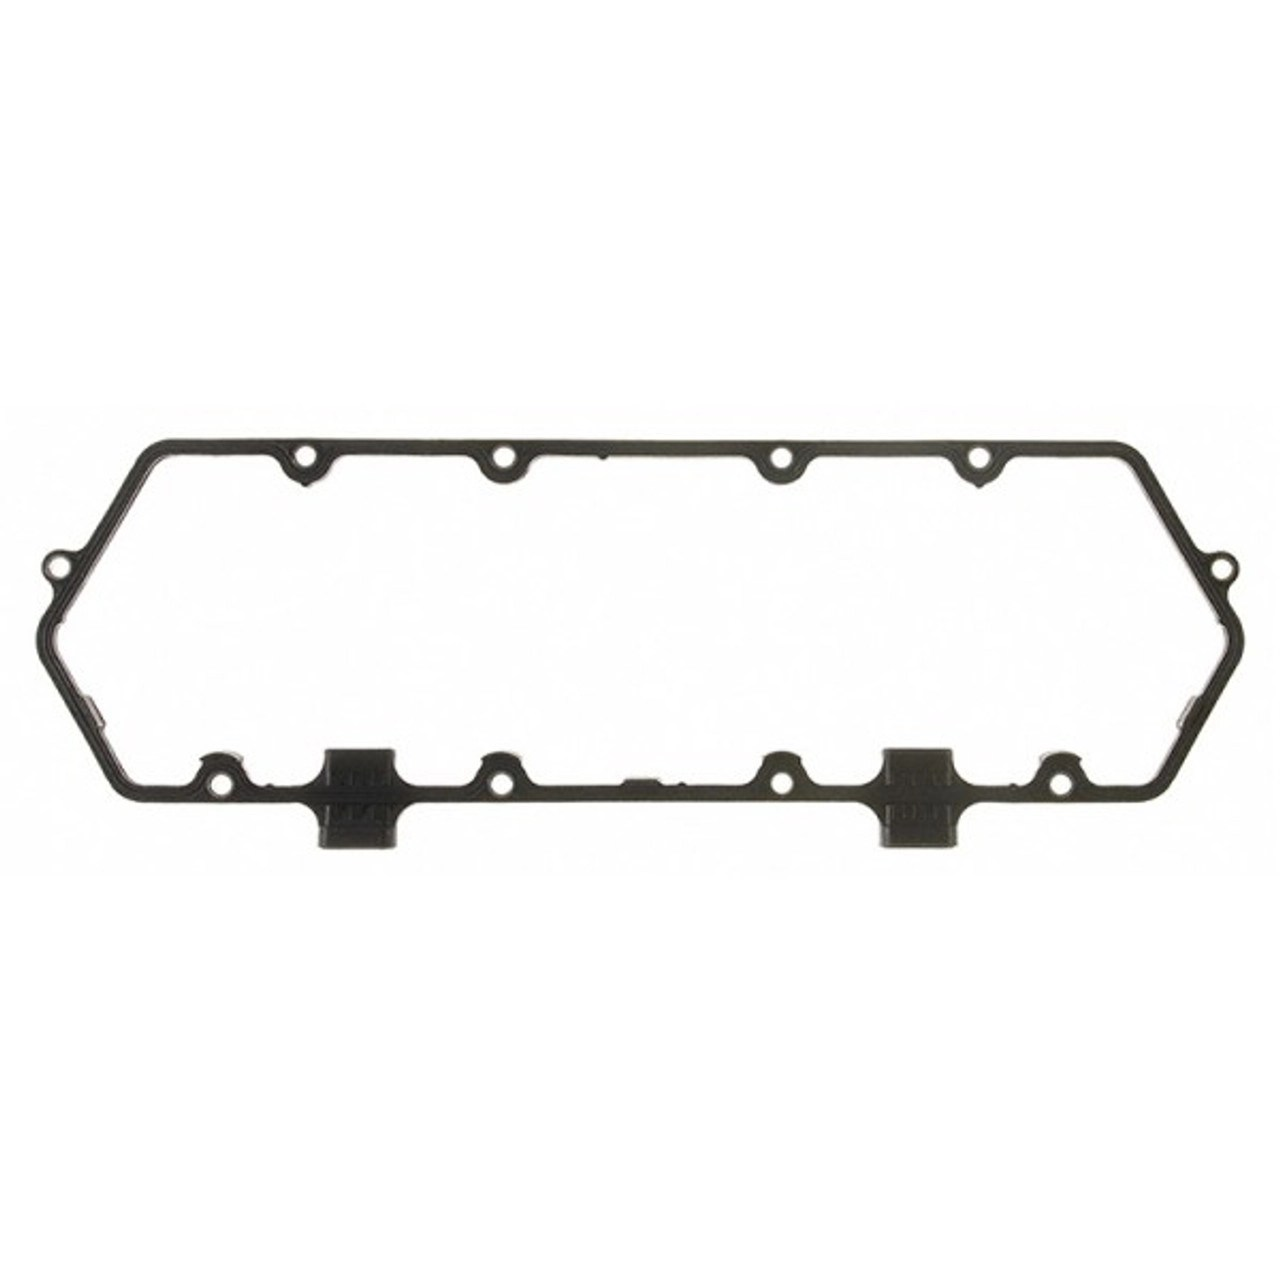 small resolution of ford oem under valve cover gasket 1994 1997 7 3l powerstroke f4tz6584a